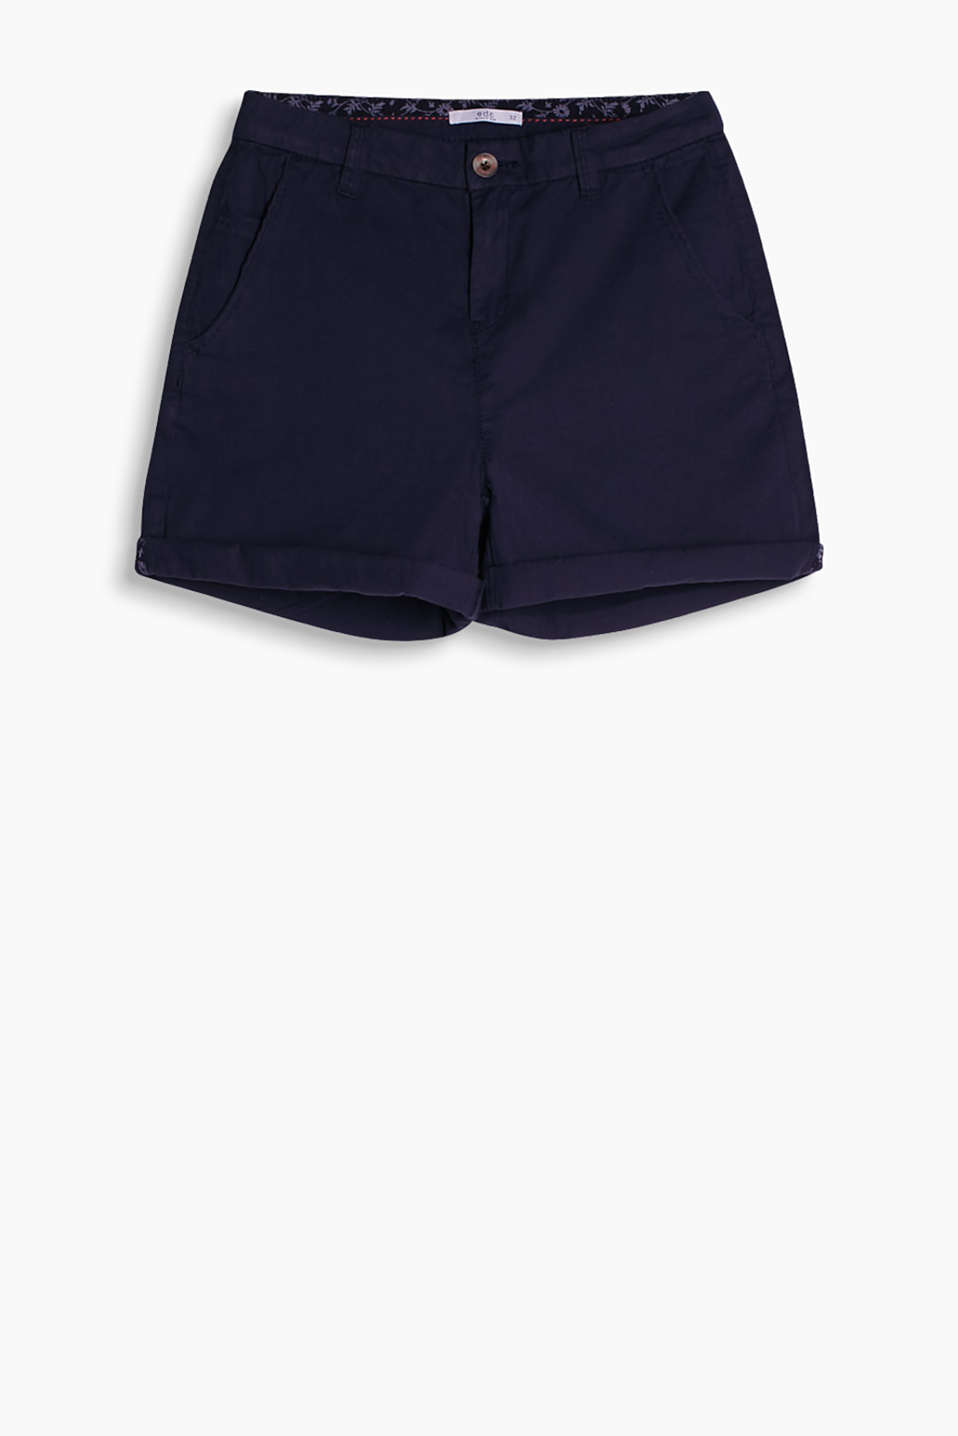 I let bomuldskvalitet: chino-shorts i sommerdesign